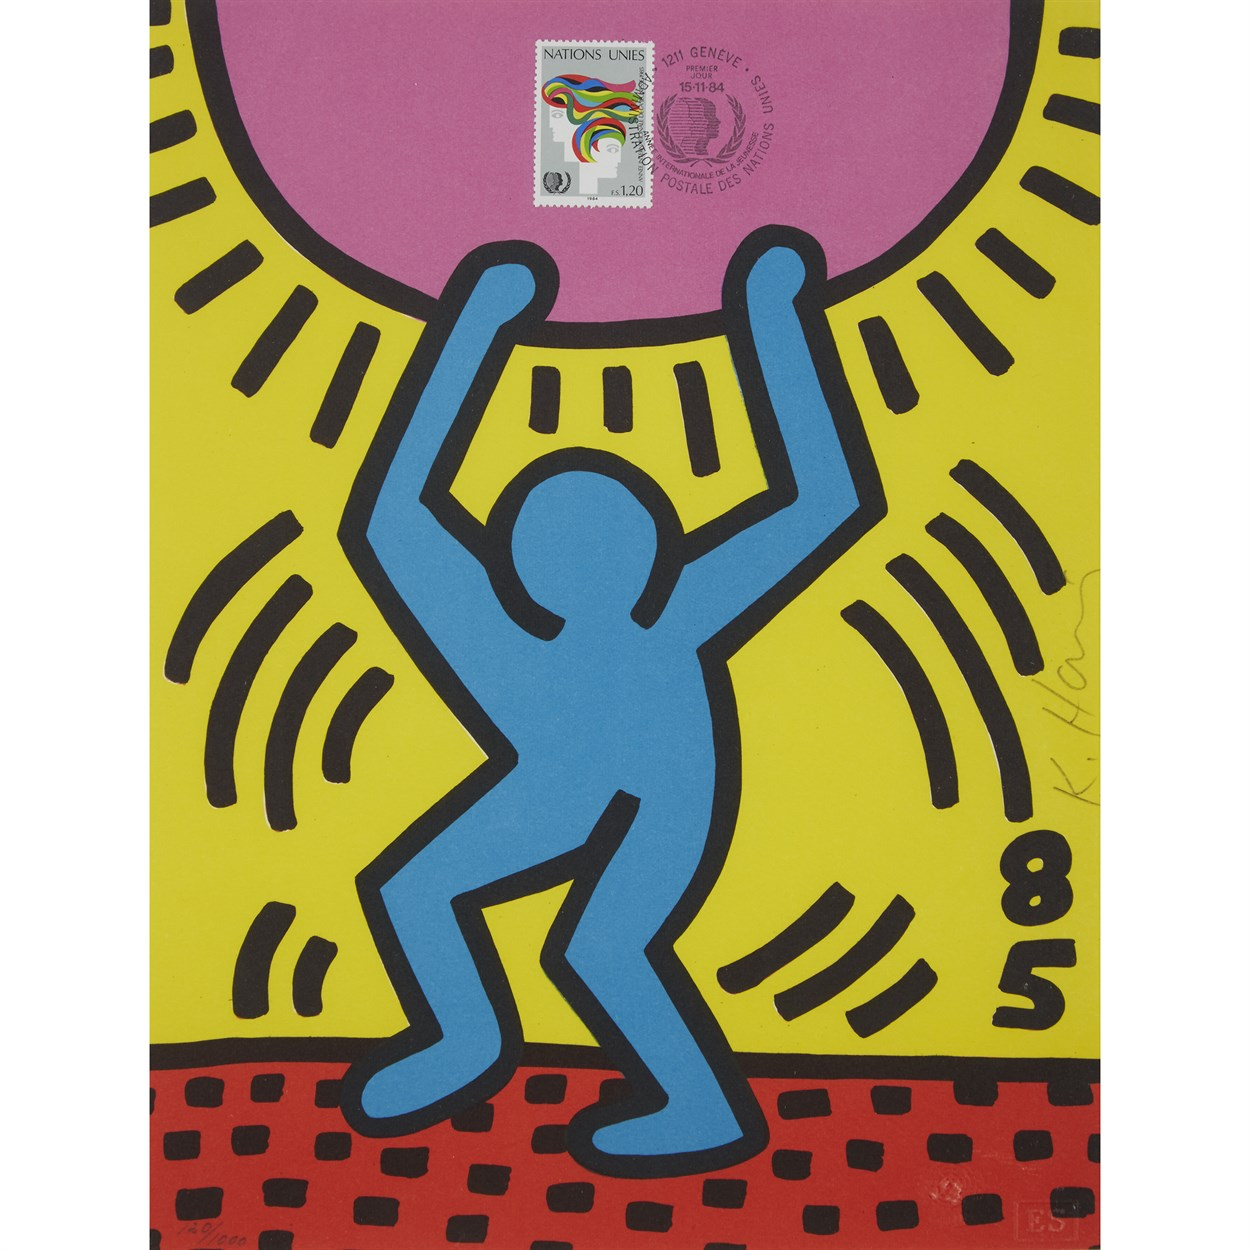 Lot 72 - Two PrintsKeith Haring (American, 1958-1990)